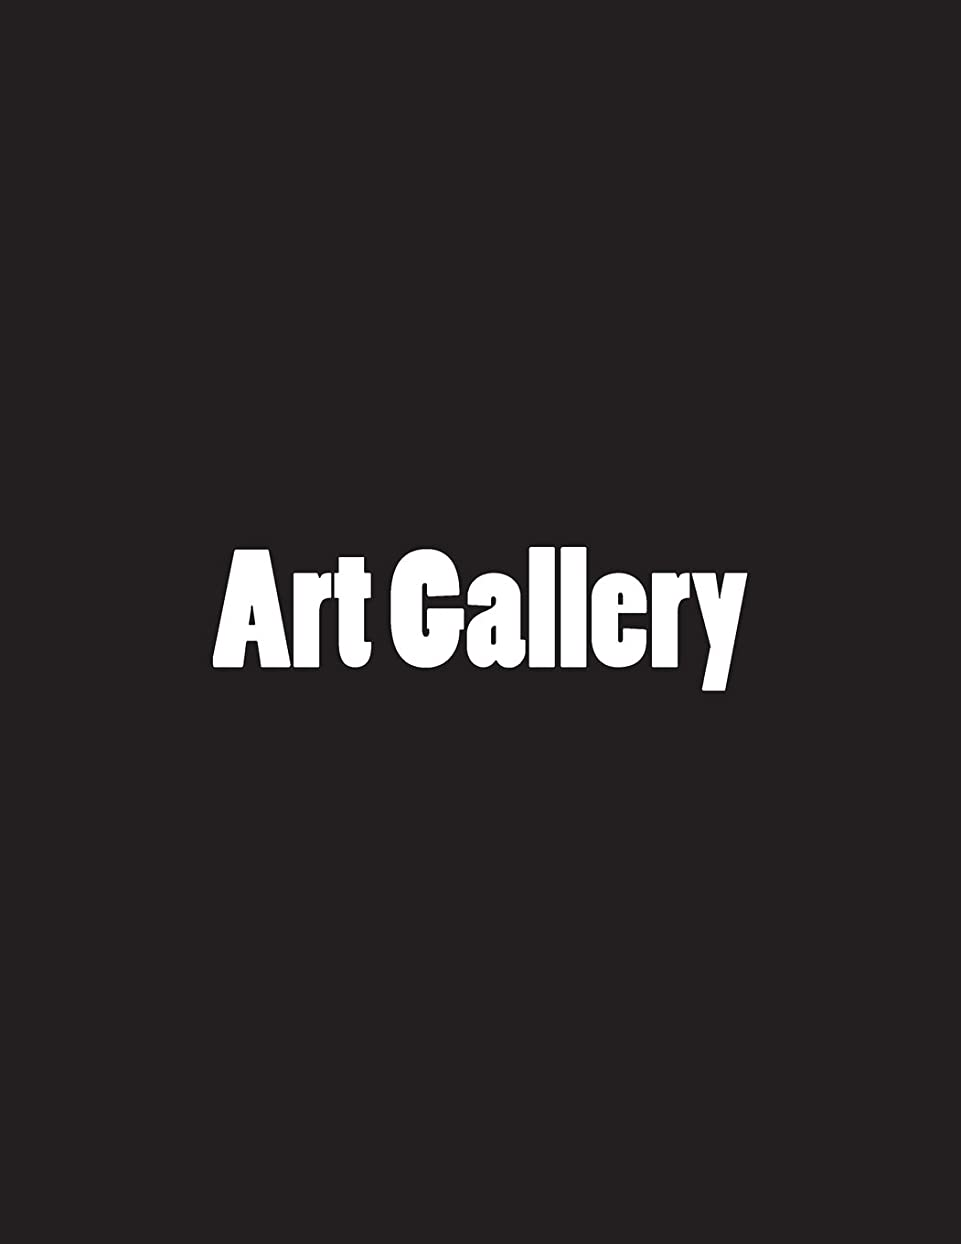 Art Gallery: Notebook Large Size 8.5 x 11 Ruled 150 Pages